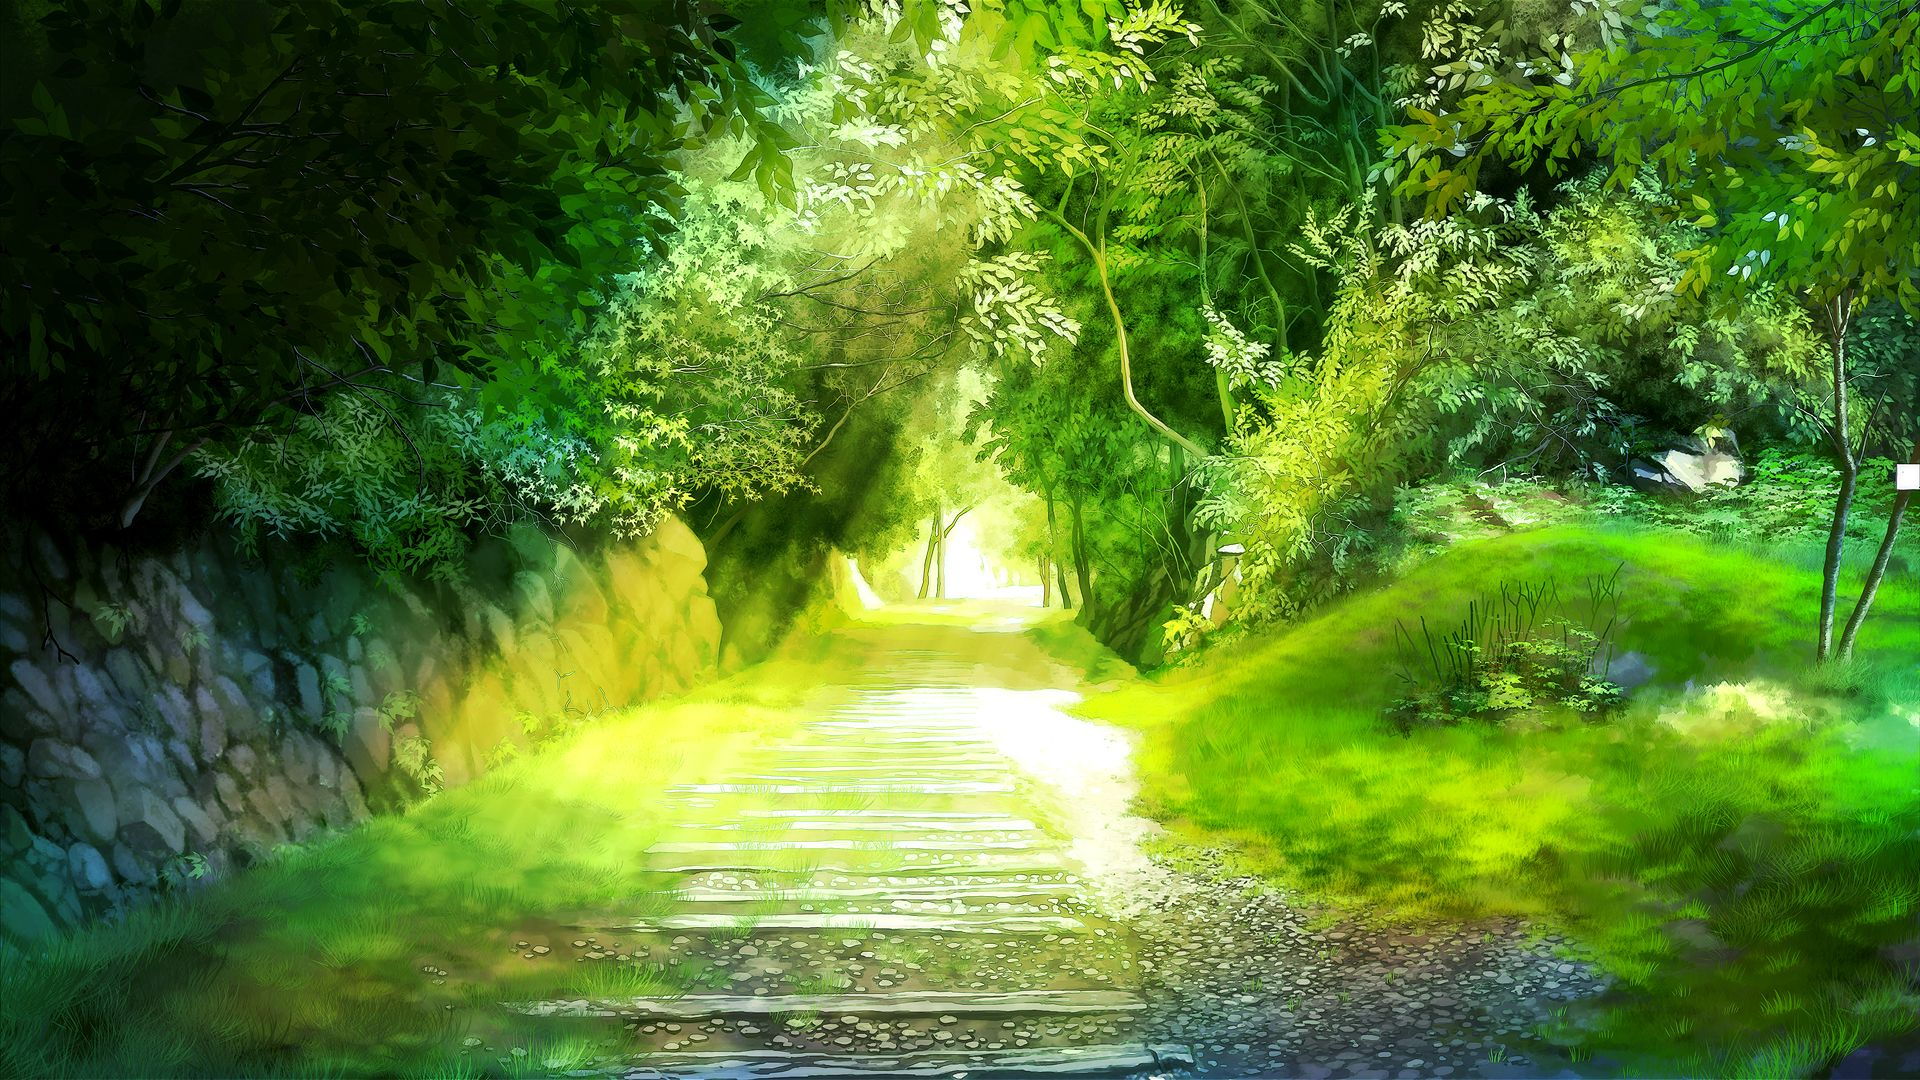 nature anime scenery background wallpaper resources